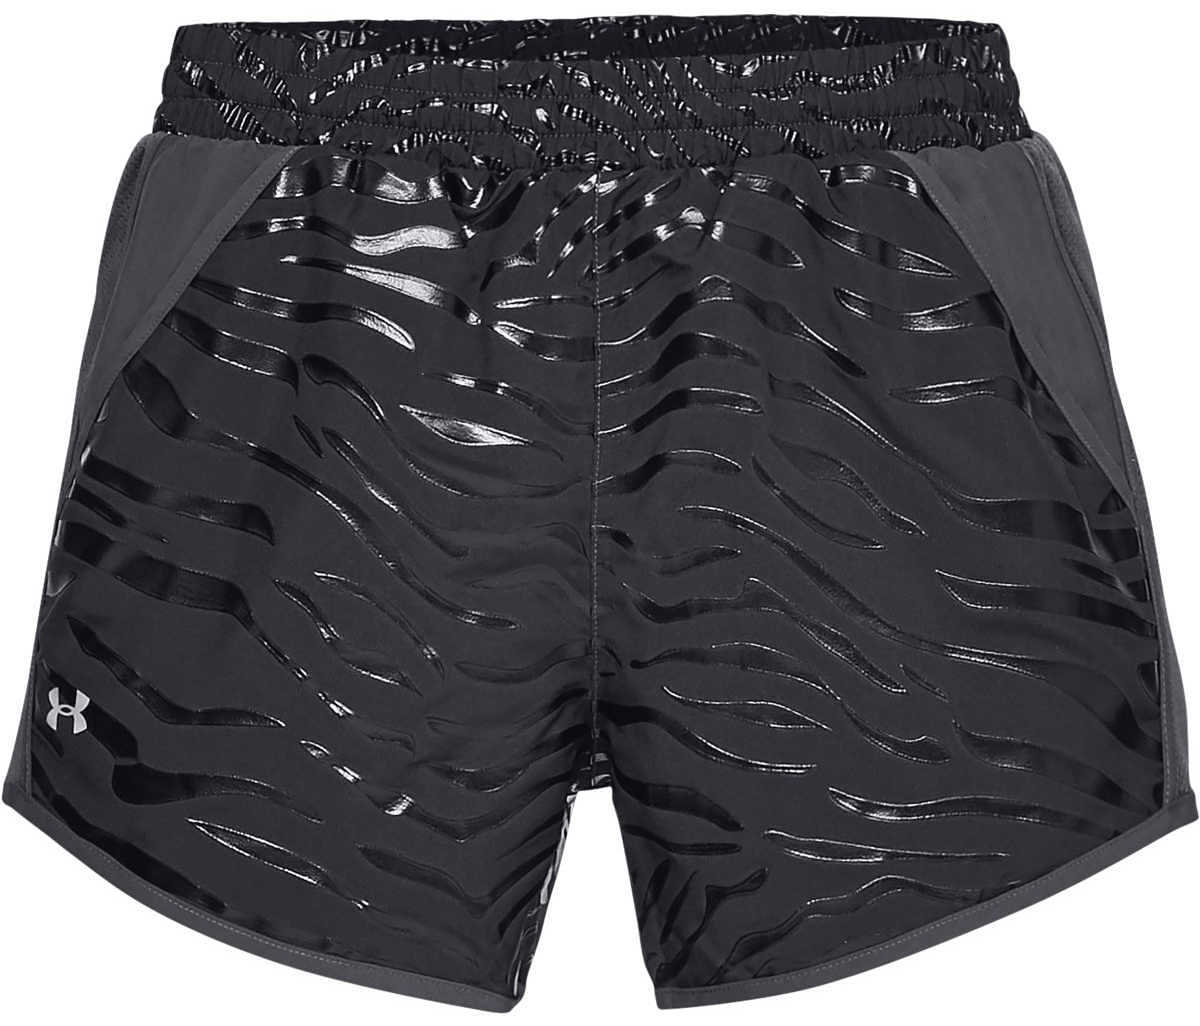 Under Armour Fly-By Shorts Black GOOFASH 302590